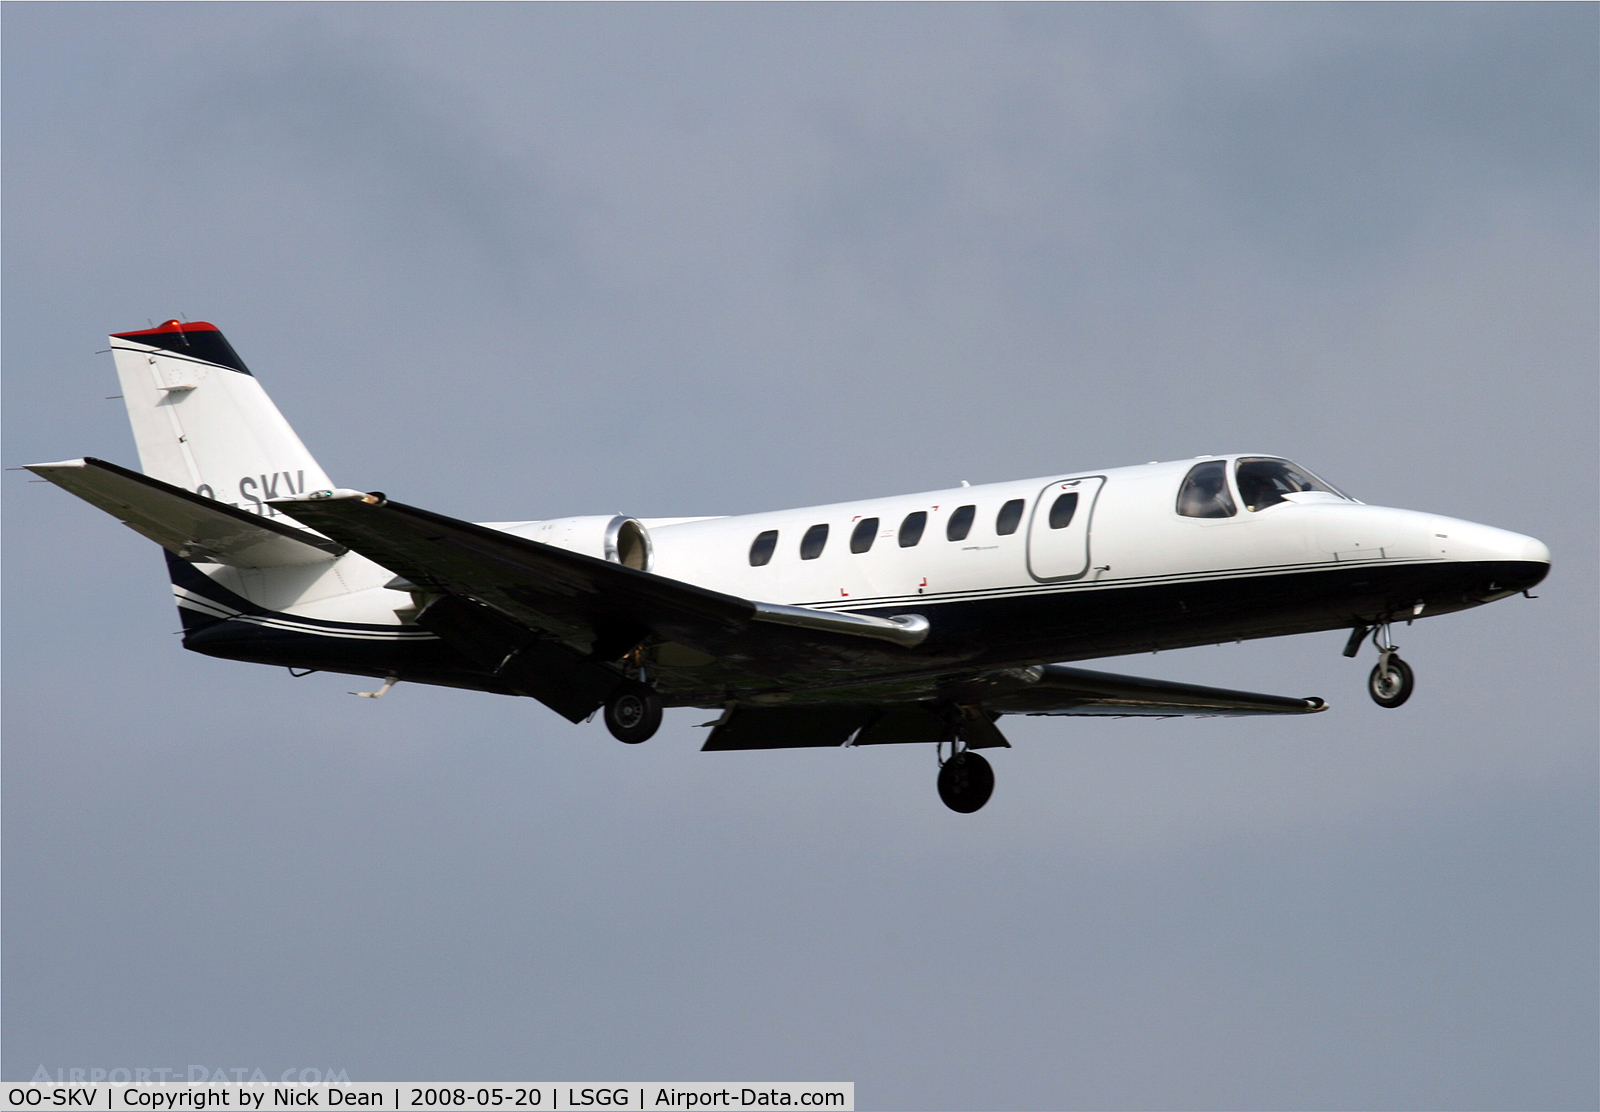 OO-SKV, 1996 Cessna 560 Citation V C/N 560-0153, LSGG (Year of manufacture is actually 1991 not as posted 1996)